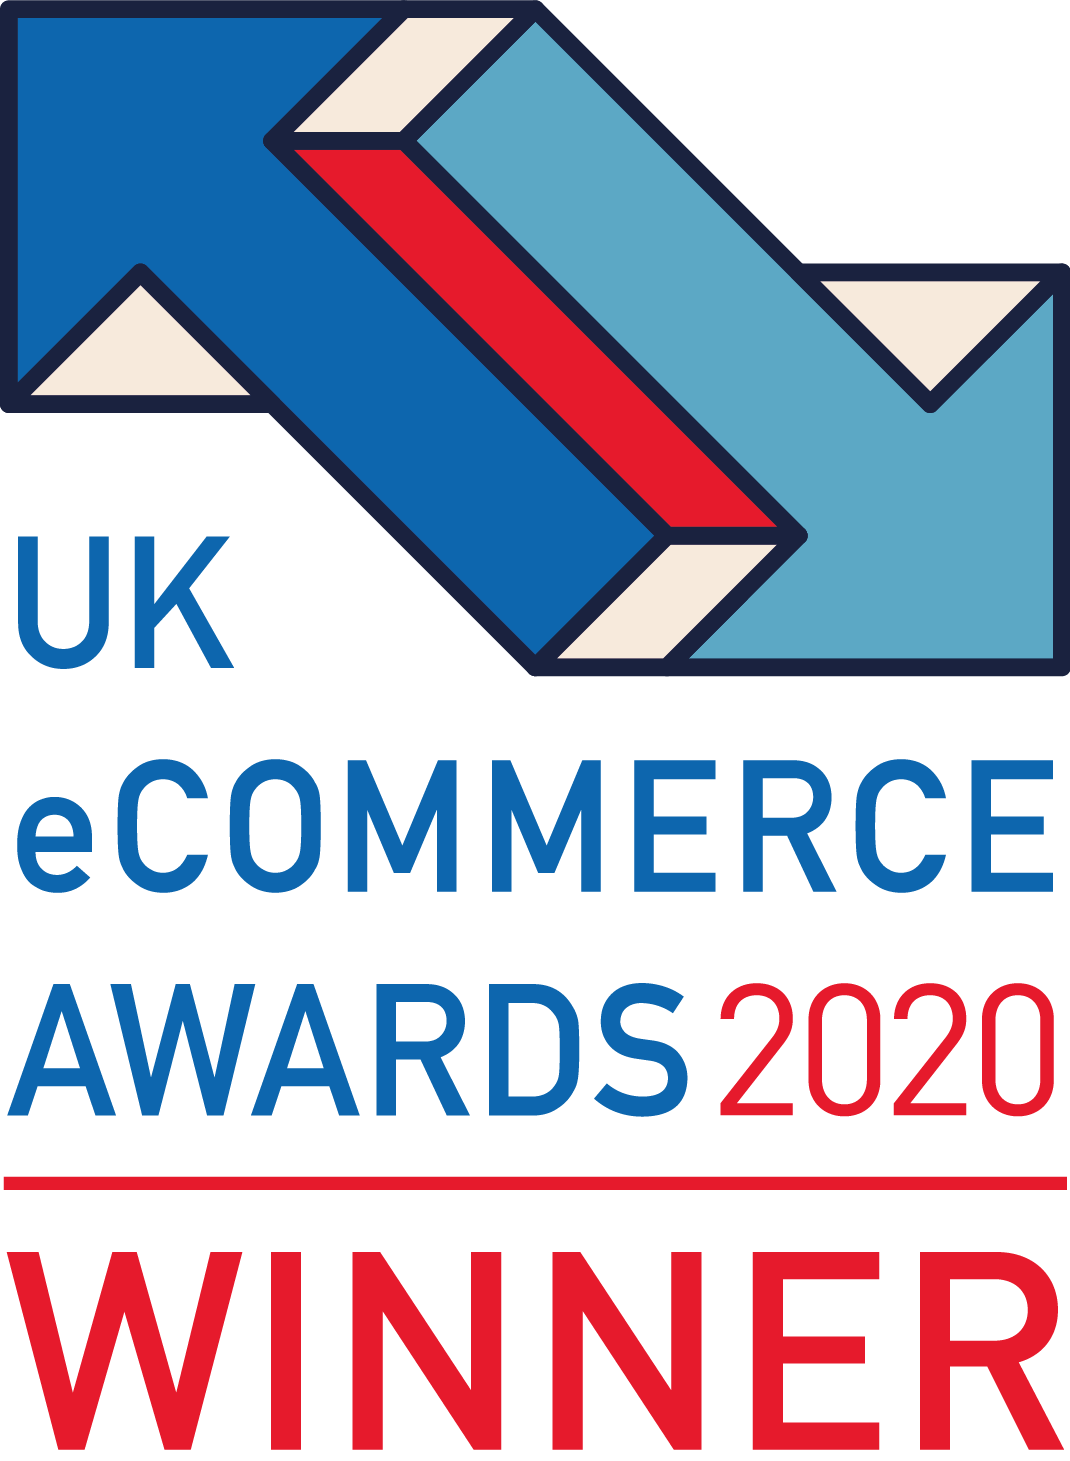 UK-eCommerce-Winner